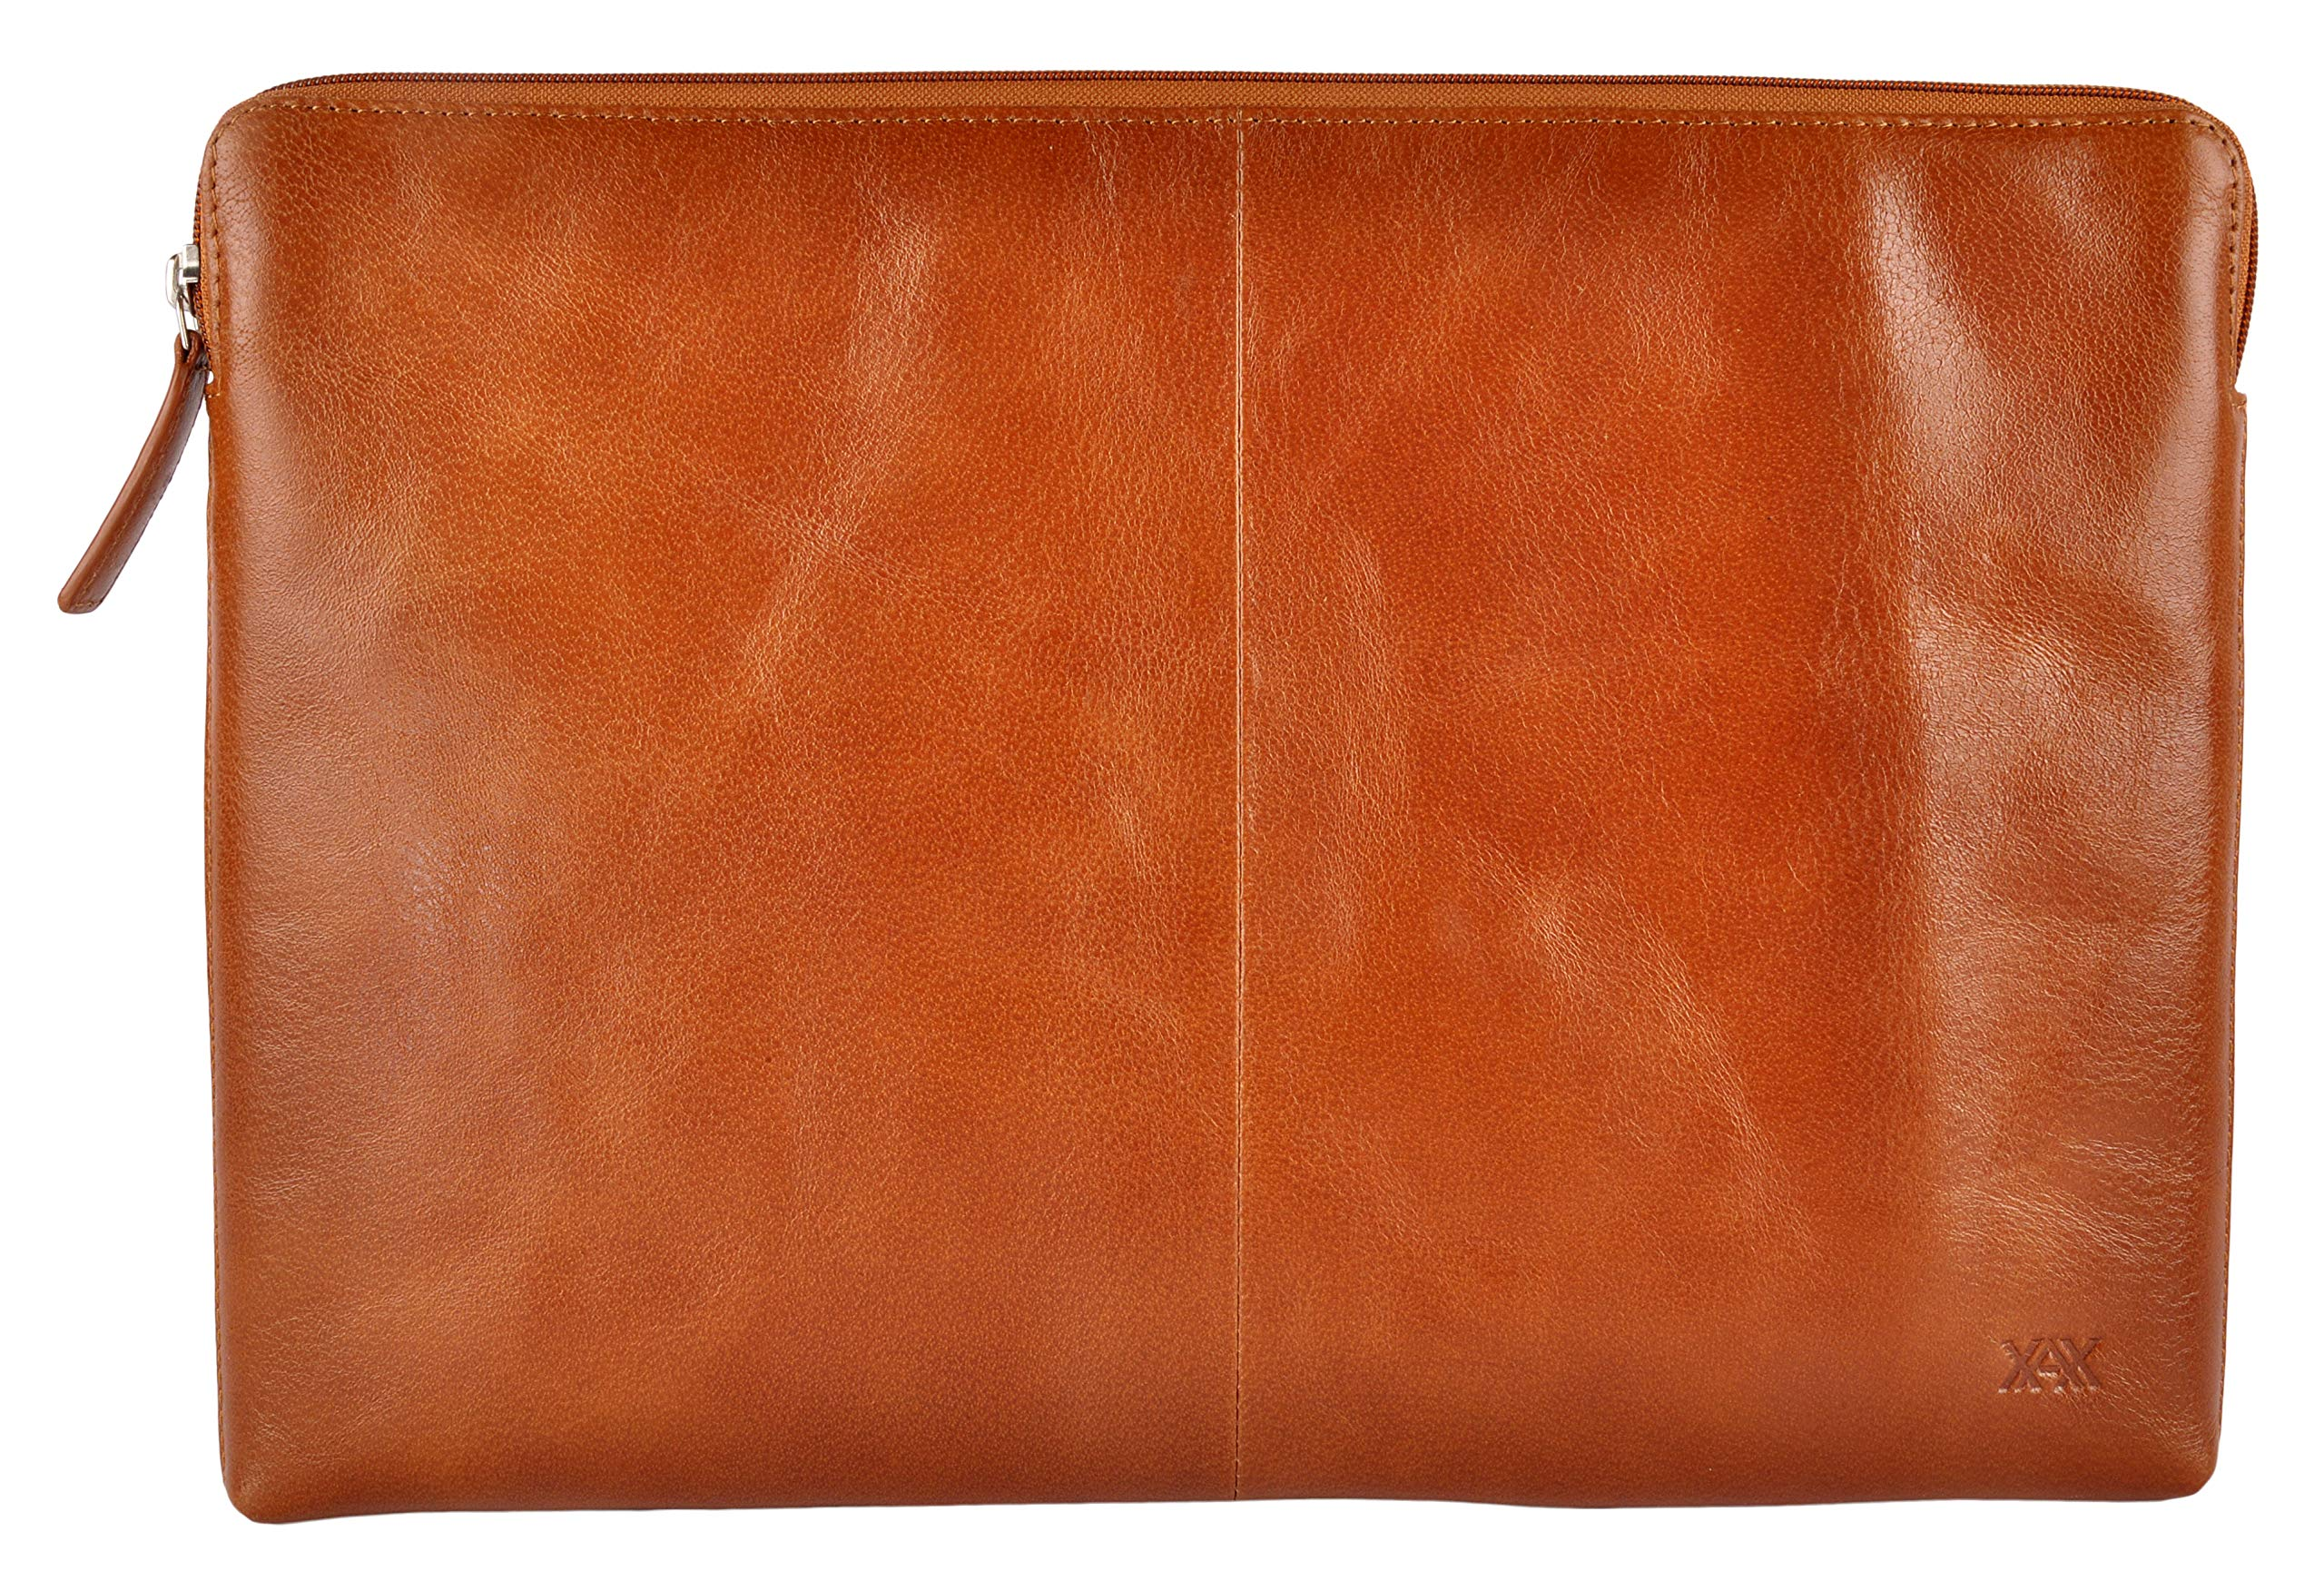 XAX Full Grain Leather Laptop Sleeves for MacBook Pro - 15 inch/Ultrabook Upto 15 inch (Tan)